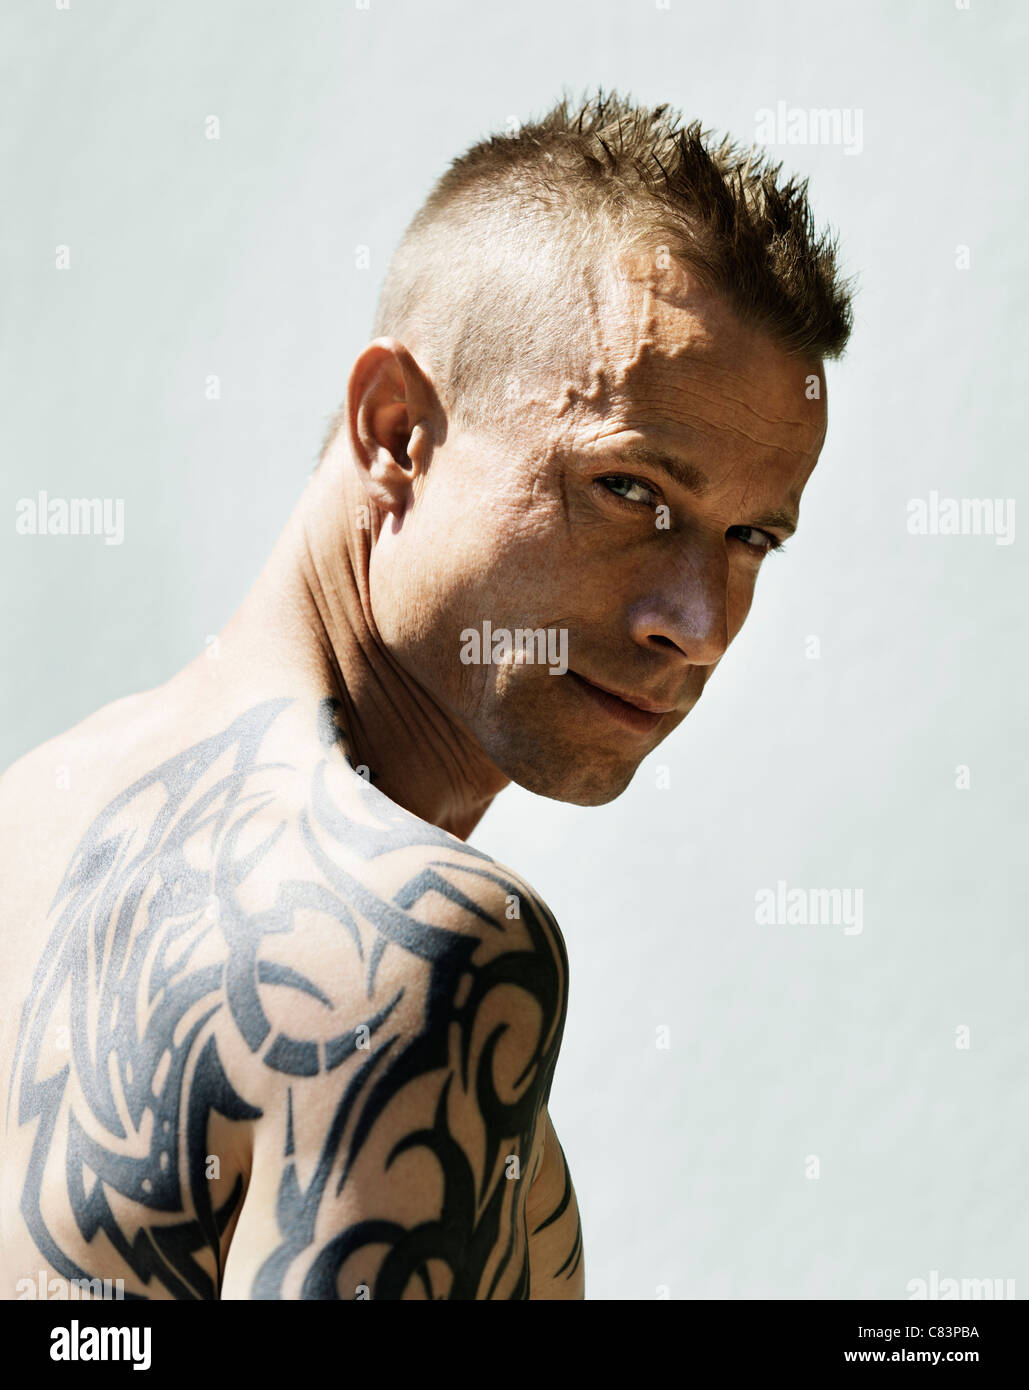 Man with tribal tattoo on shoulder - Stock Image